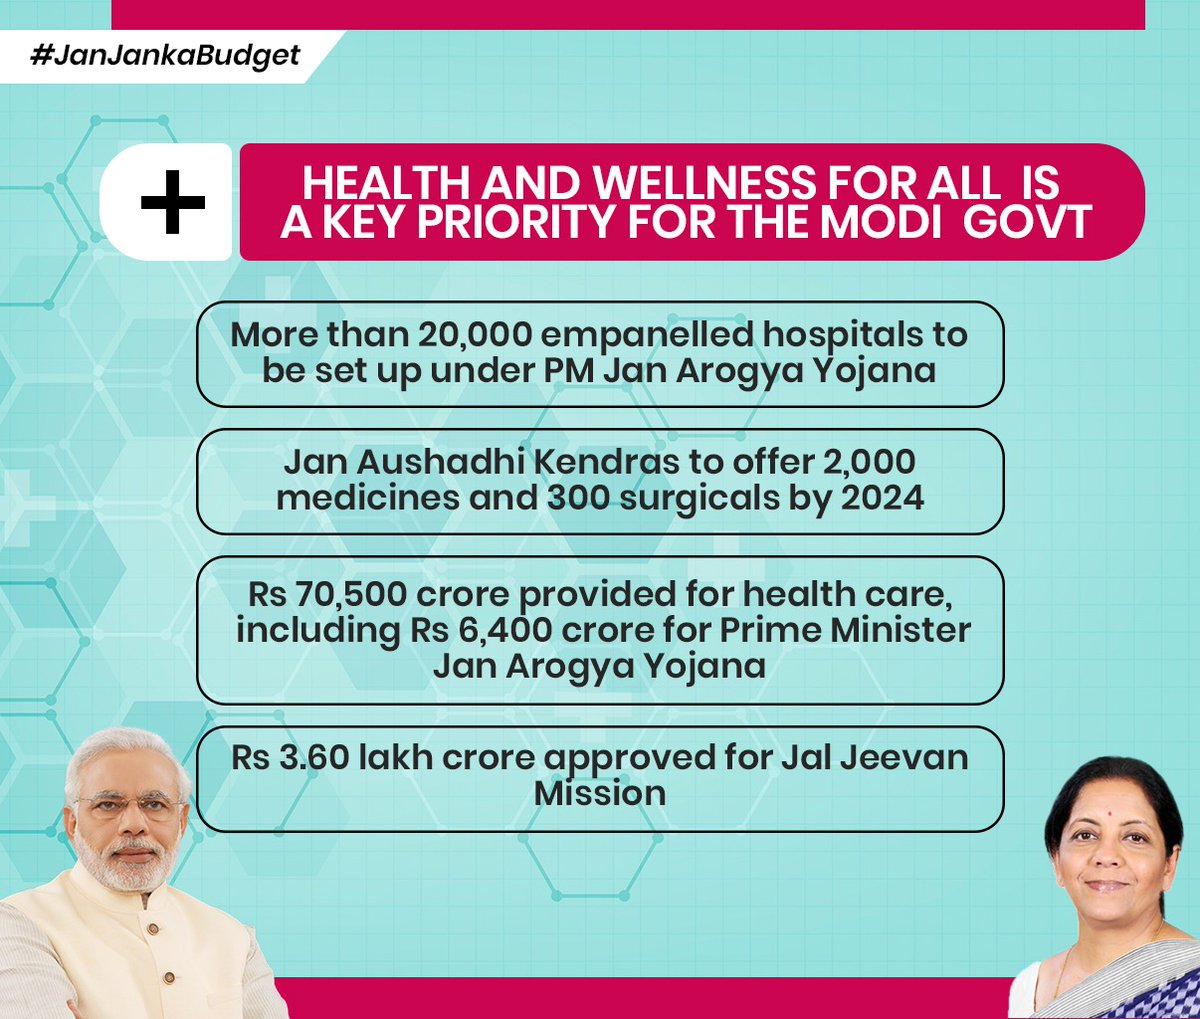 Health and weakness for all is a key priority for the modi govt. @nsitharamanpic.twitter.com/SqmpmvQJwK